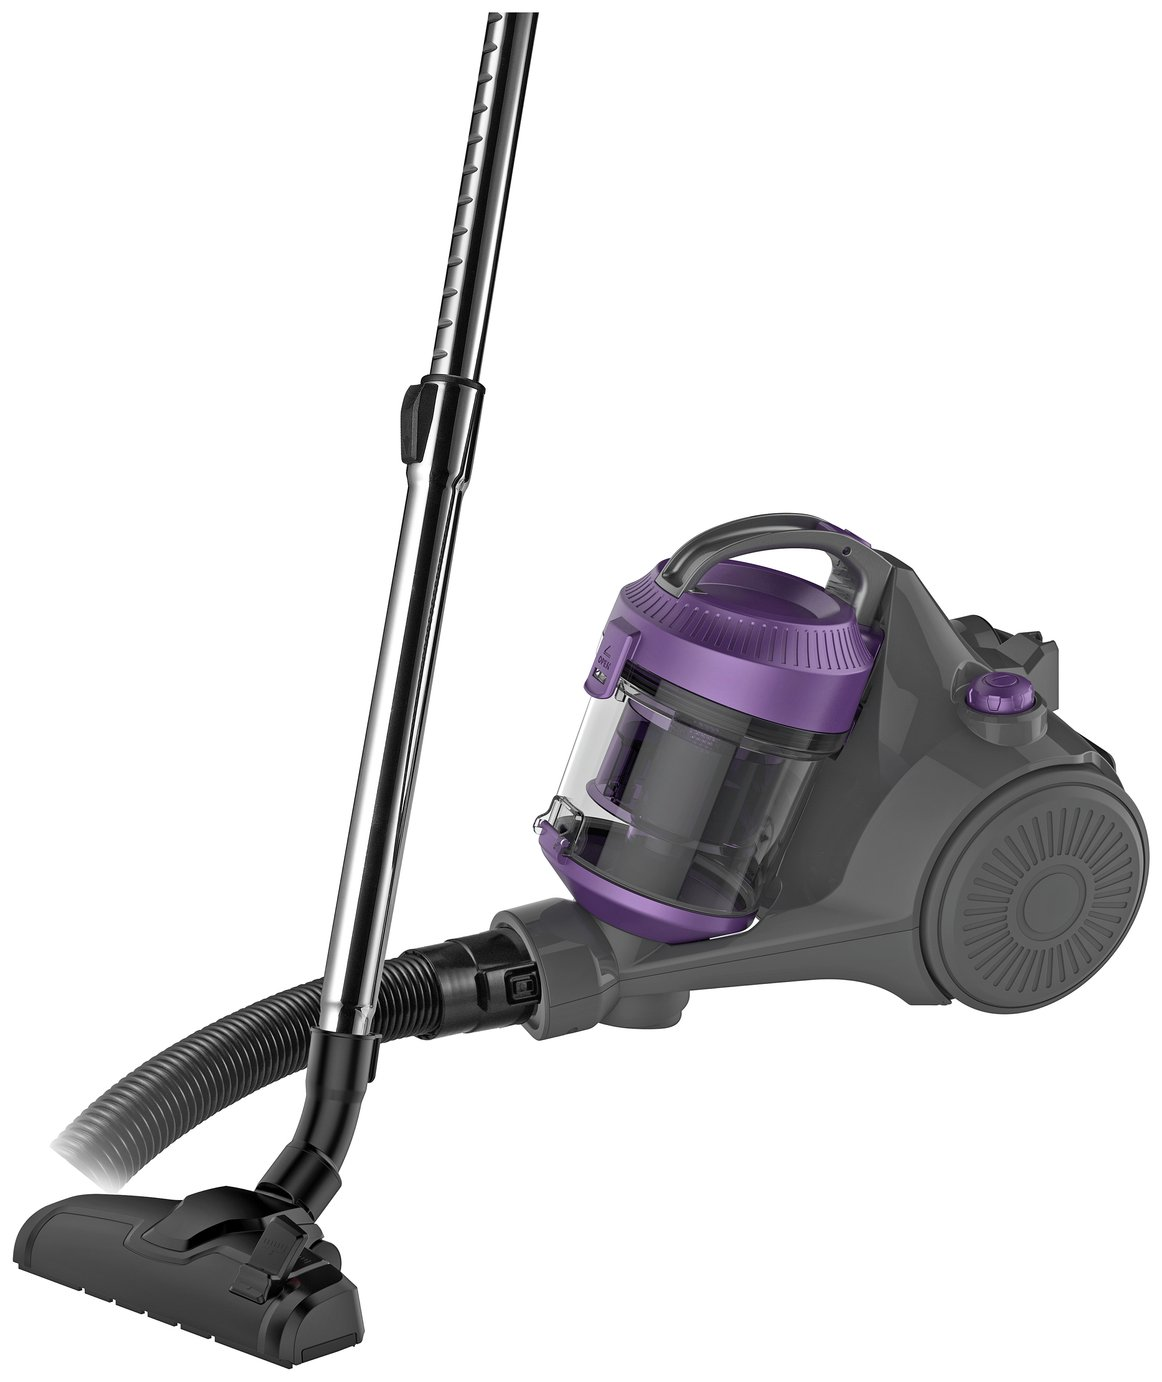 Bush VCS35B15KD Bagless Cylinder Vacuum Cleaner